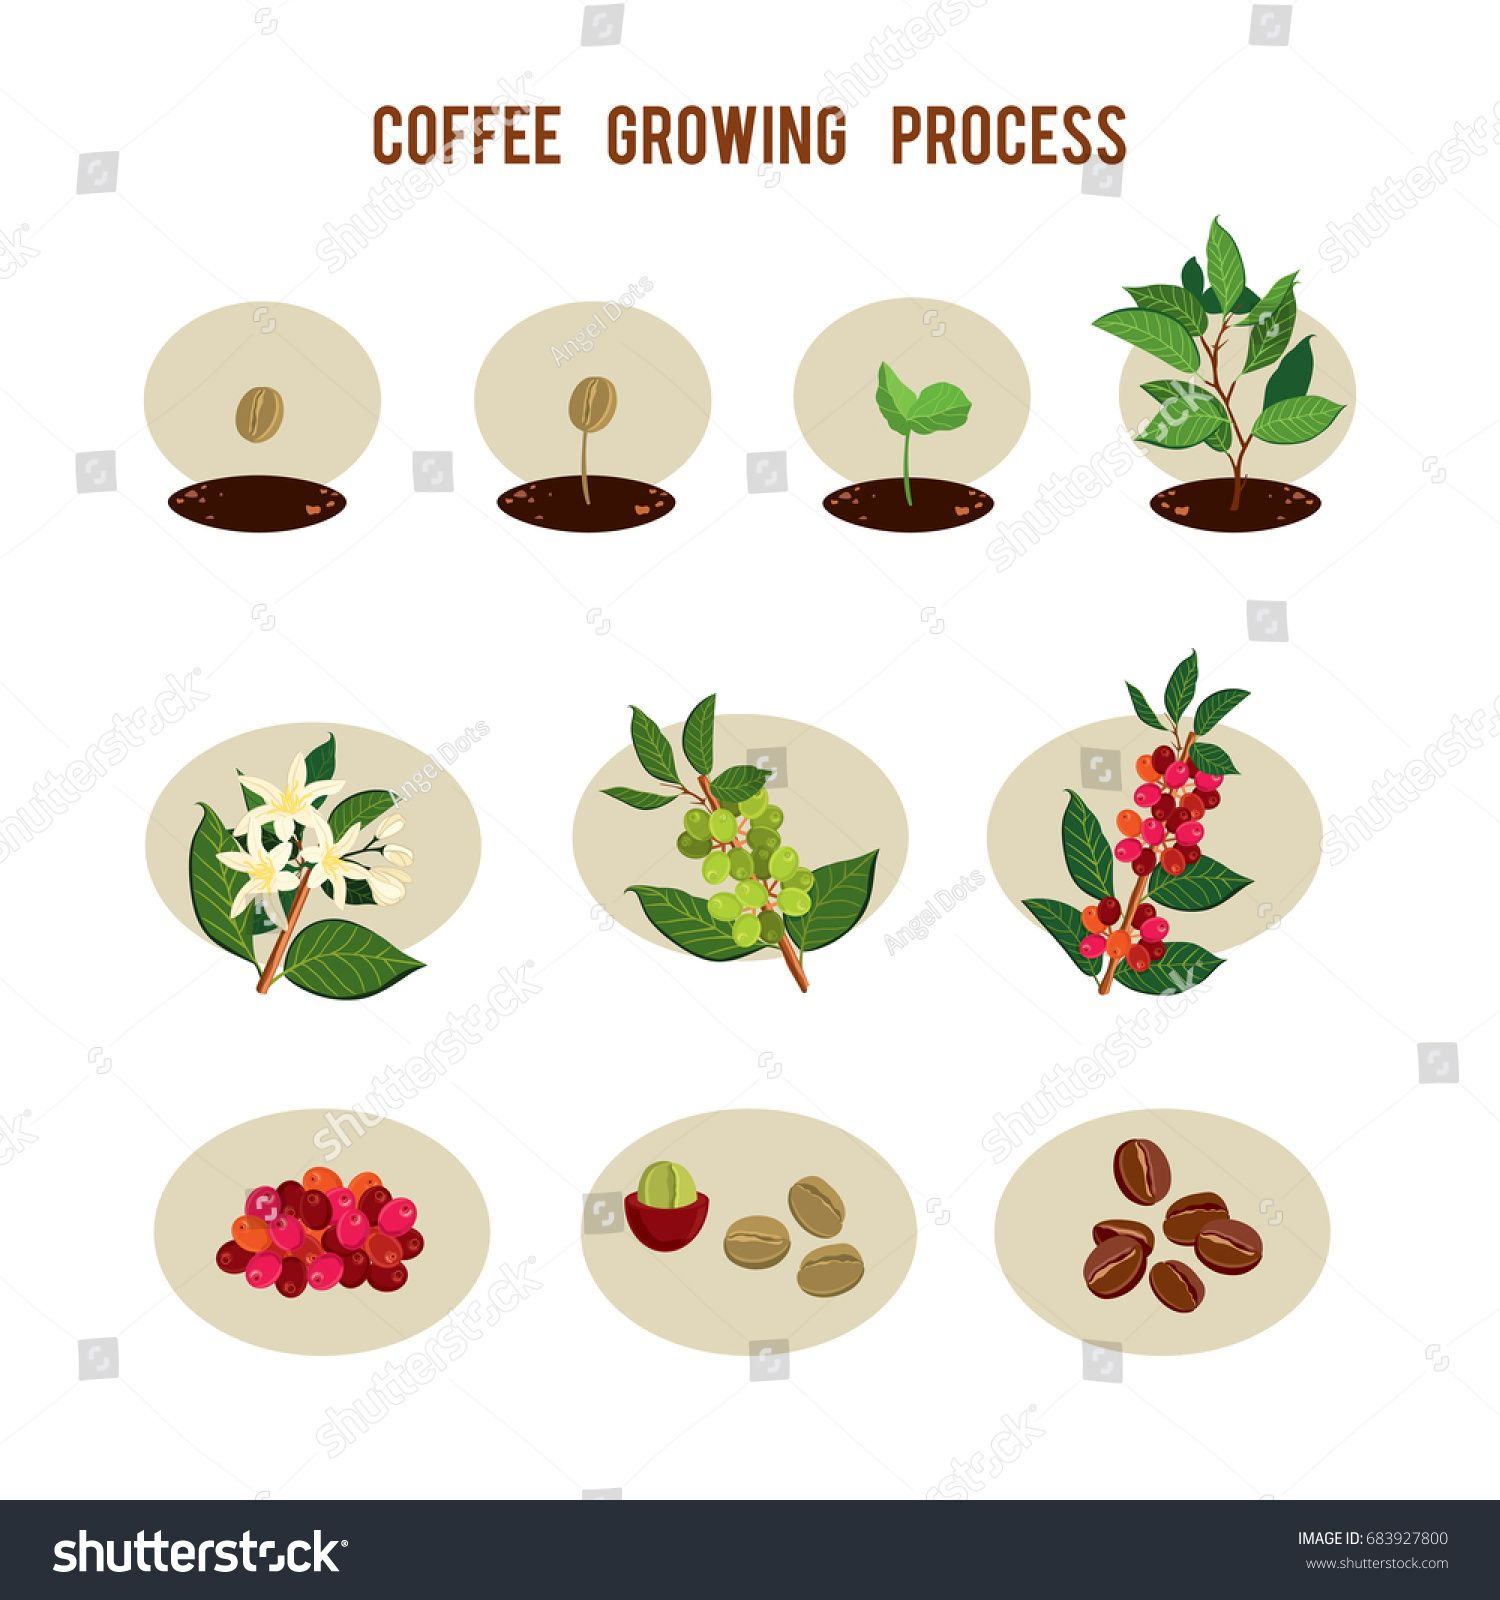 Plant Seed Germination Stages Process Of Planting And